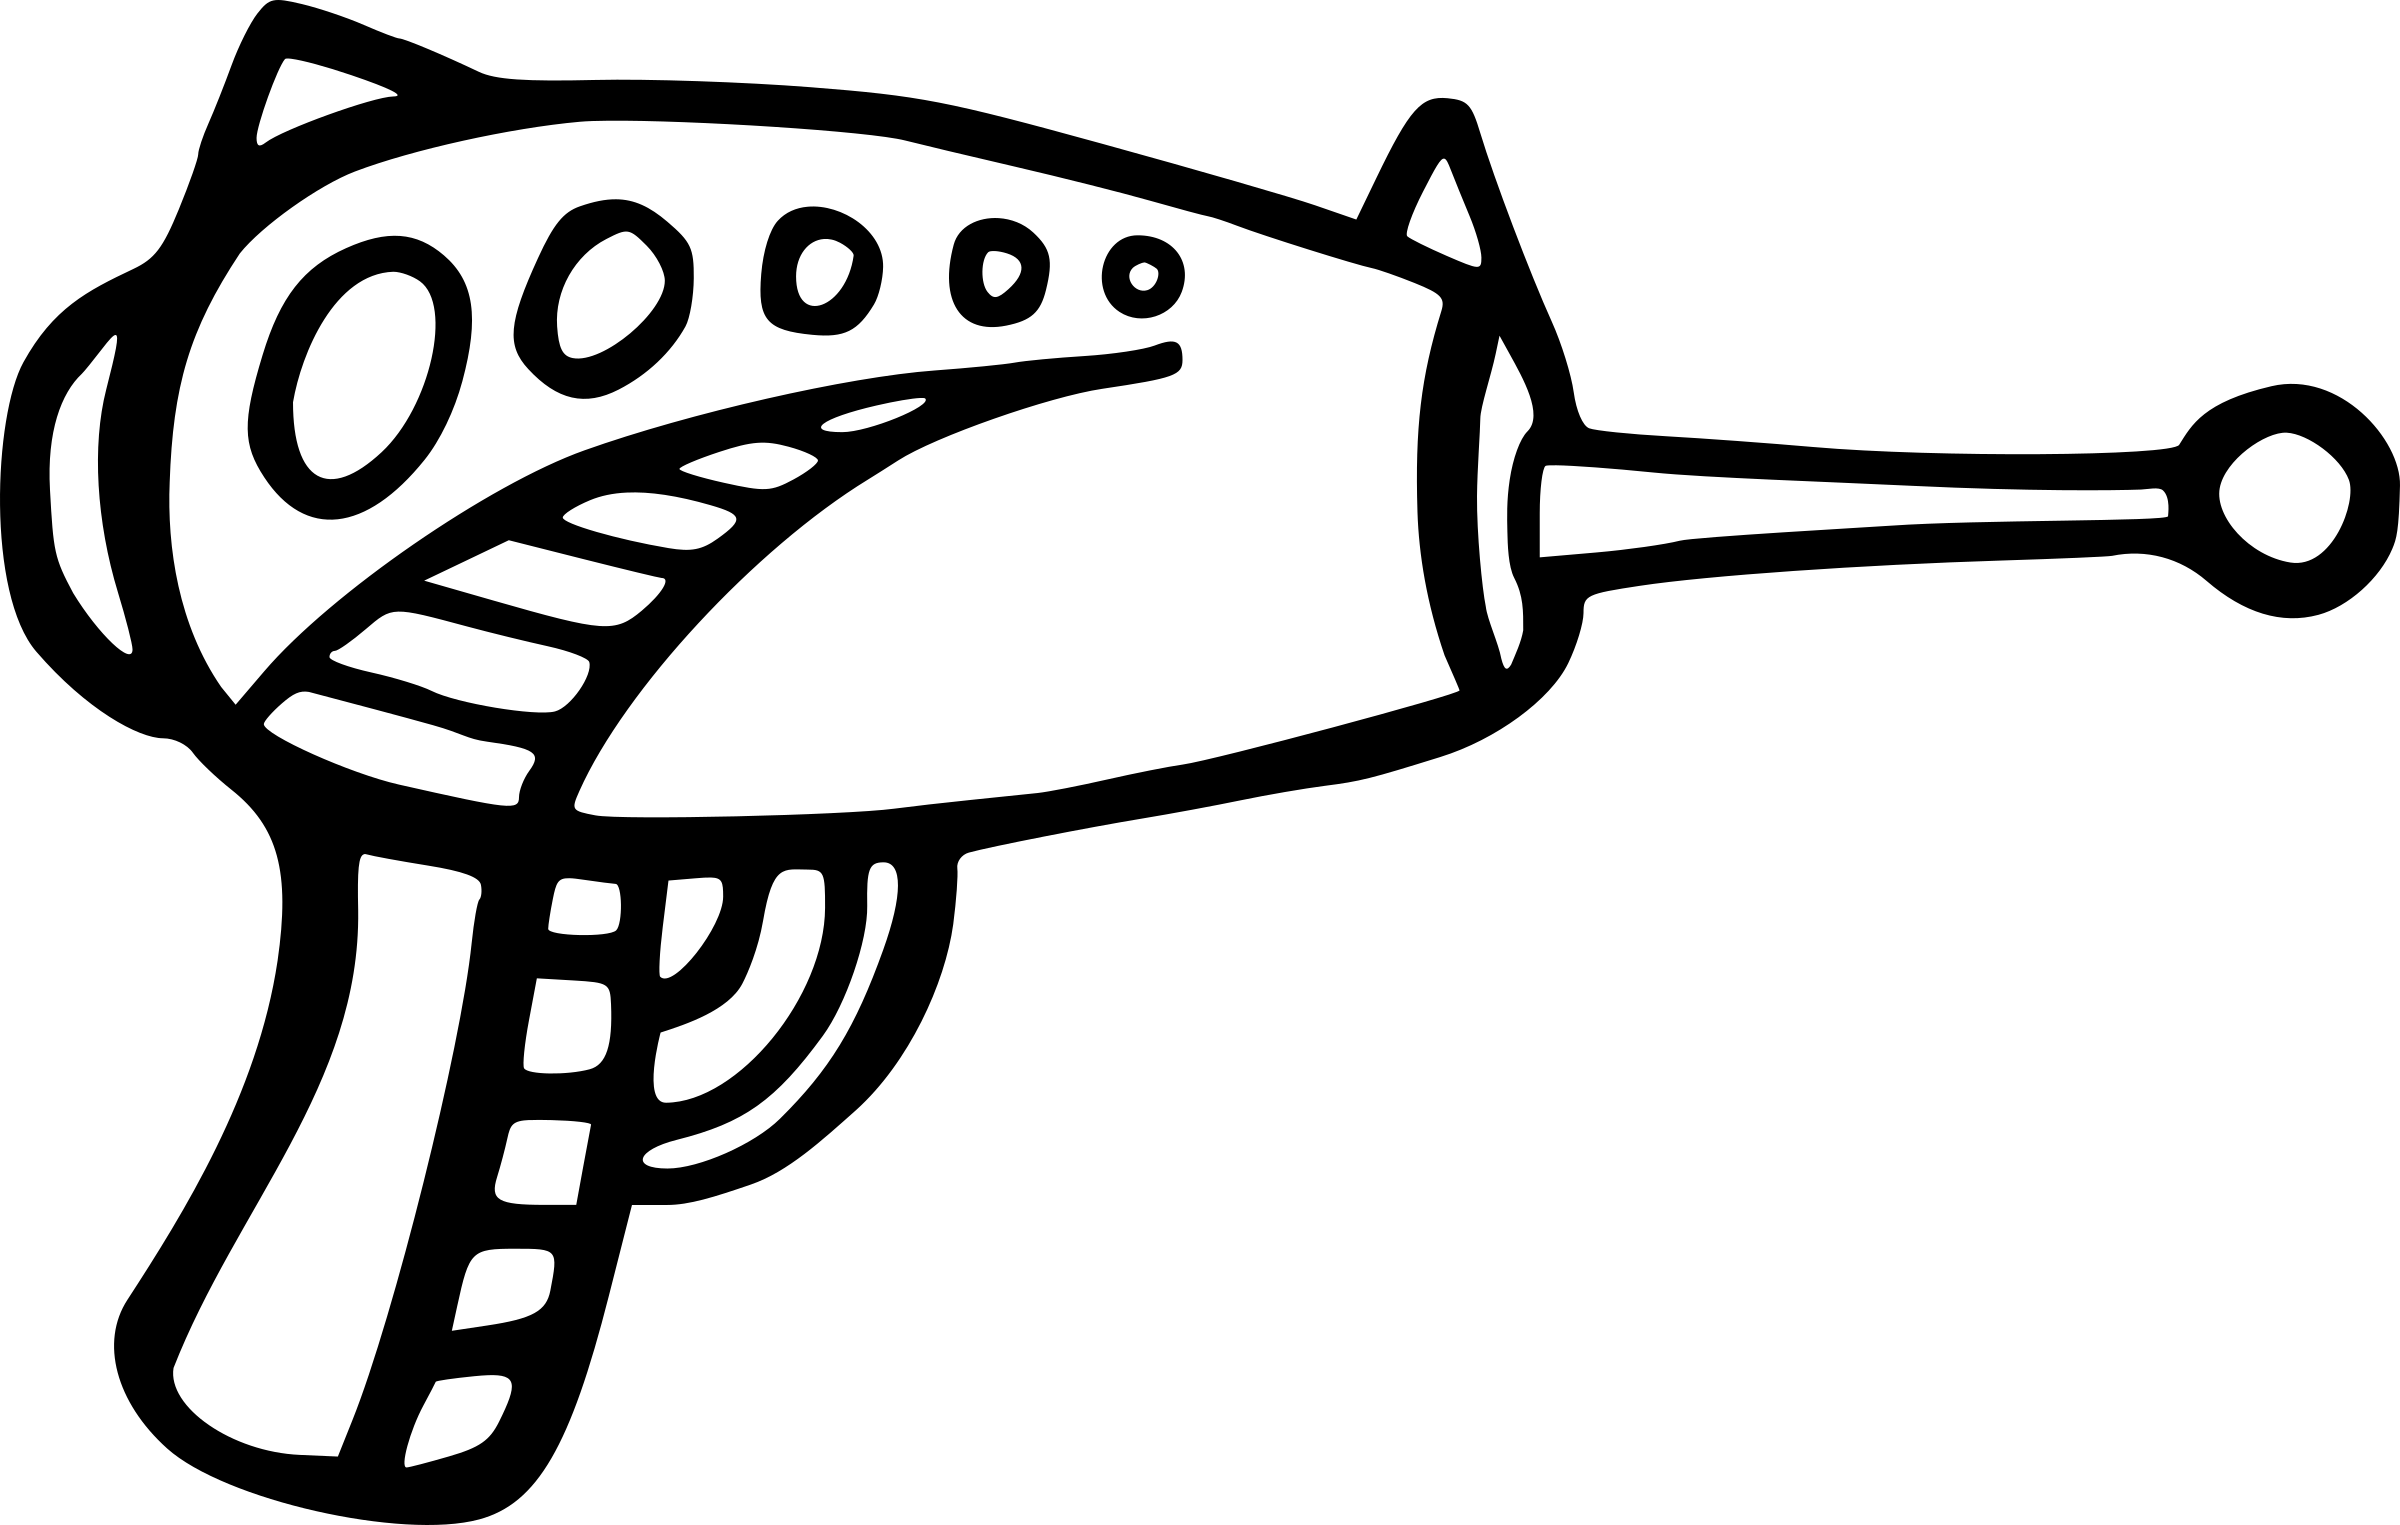 Raygun Vector Clipart Image